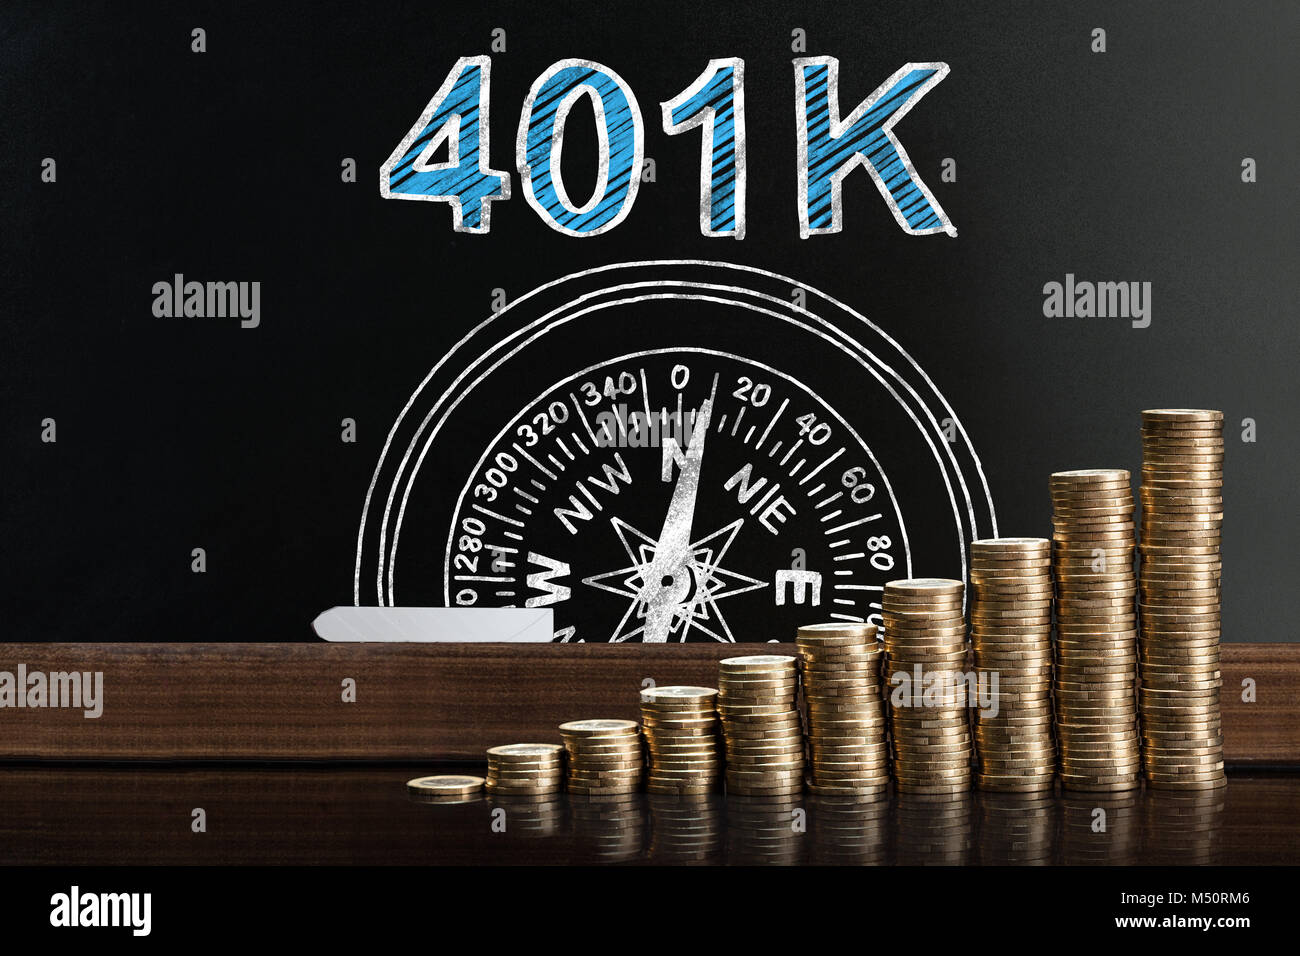 401k Pension Plan On Blackboard Behind Stacked Coins - Stock Image